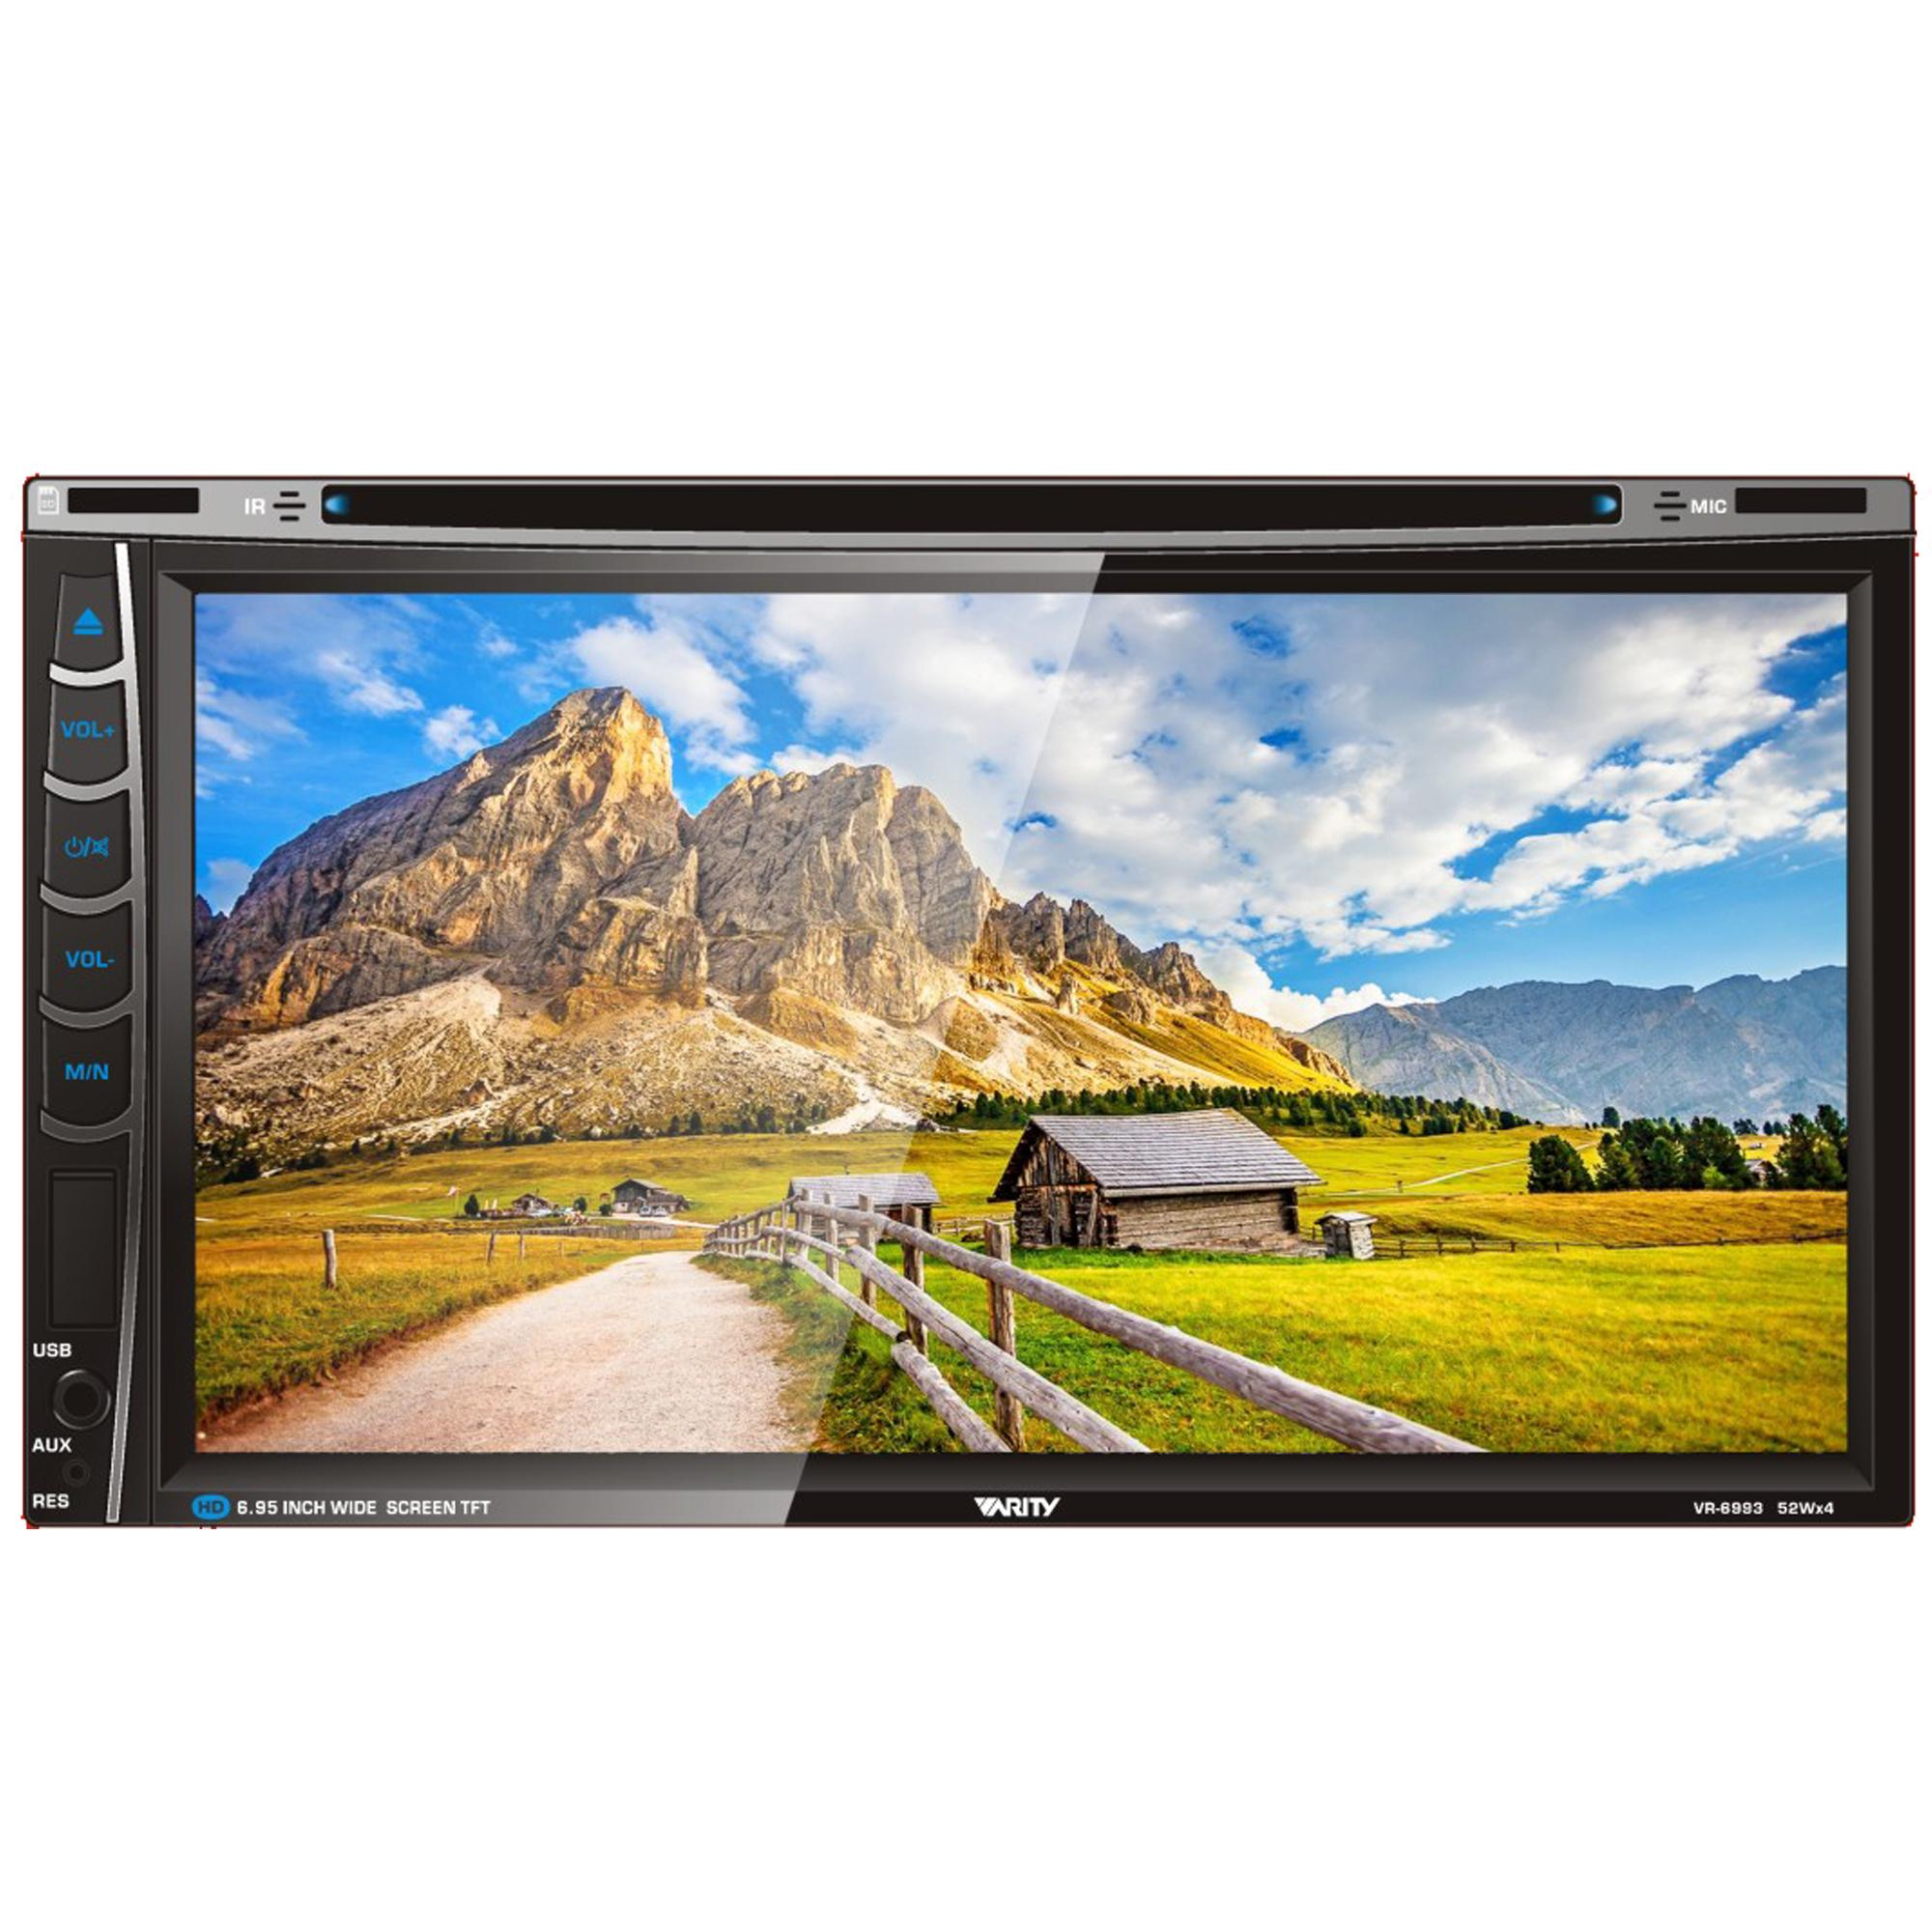 Varity VR 6993M Autolink integrasi smartphone dan Head Unit Double Din 6 95 inch Double Din Dvd Tv Monitor Touch Screen